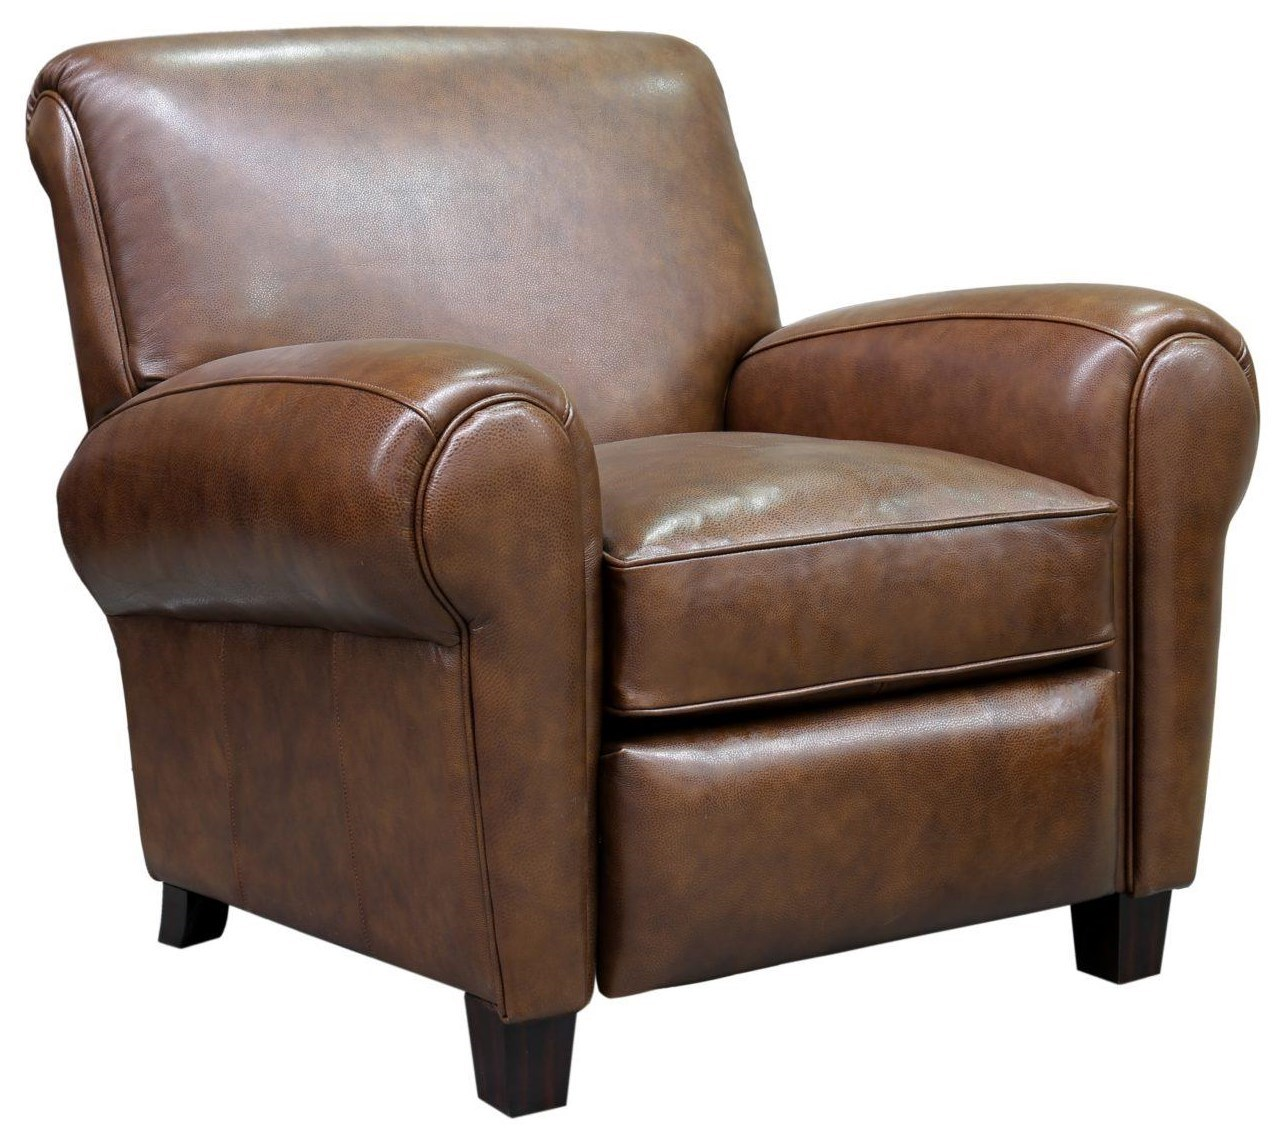 Double Recliner Chair Edwin Wenlock Double Chocolate Push Thru Arm Recliner By Barcalounger At Dream Home Furniture